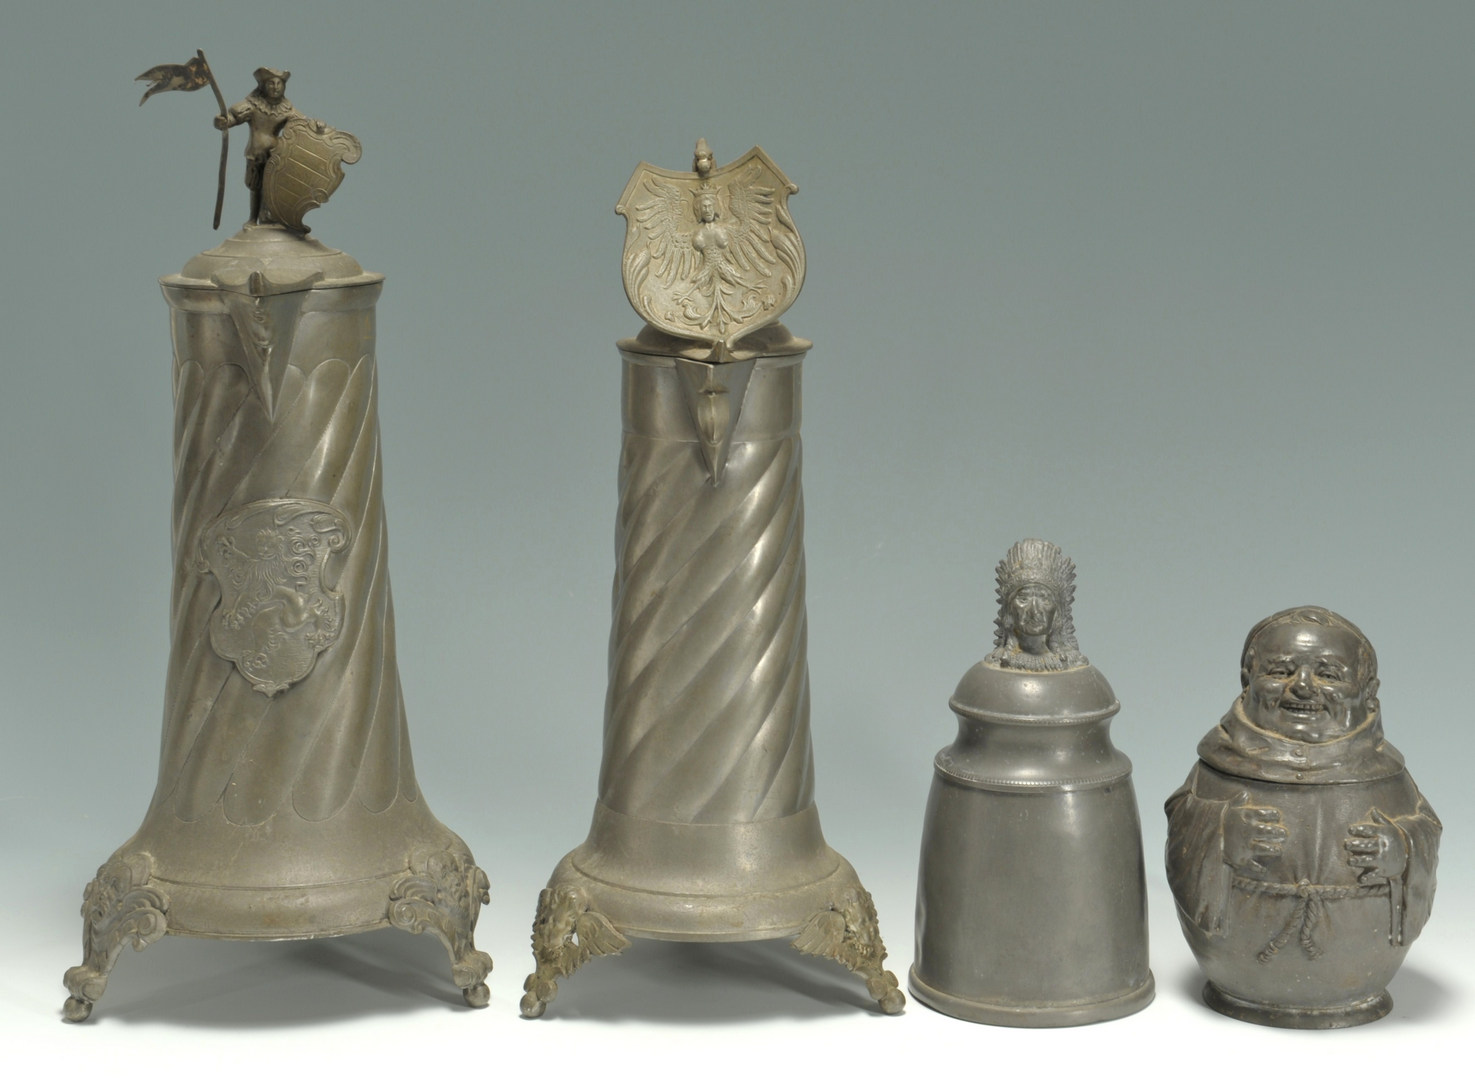 Lot 410: 4 Figural Pewter Steins and pitchers